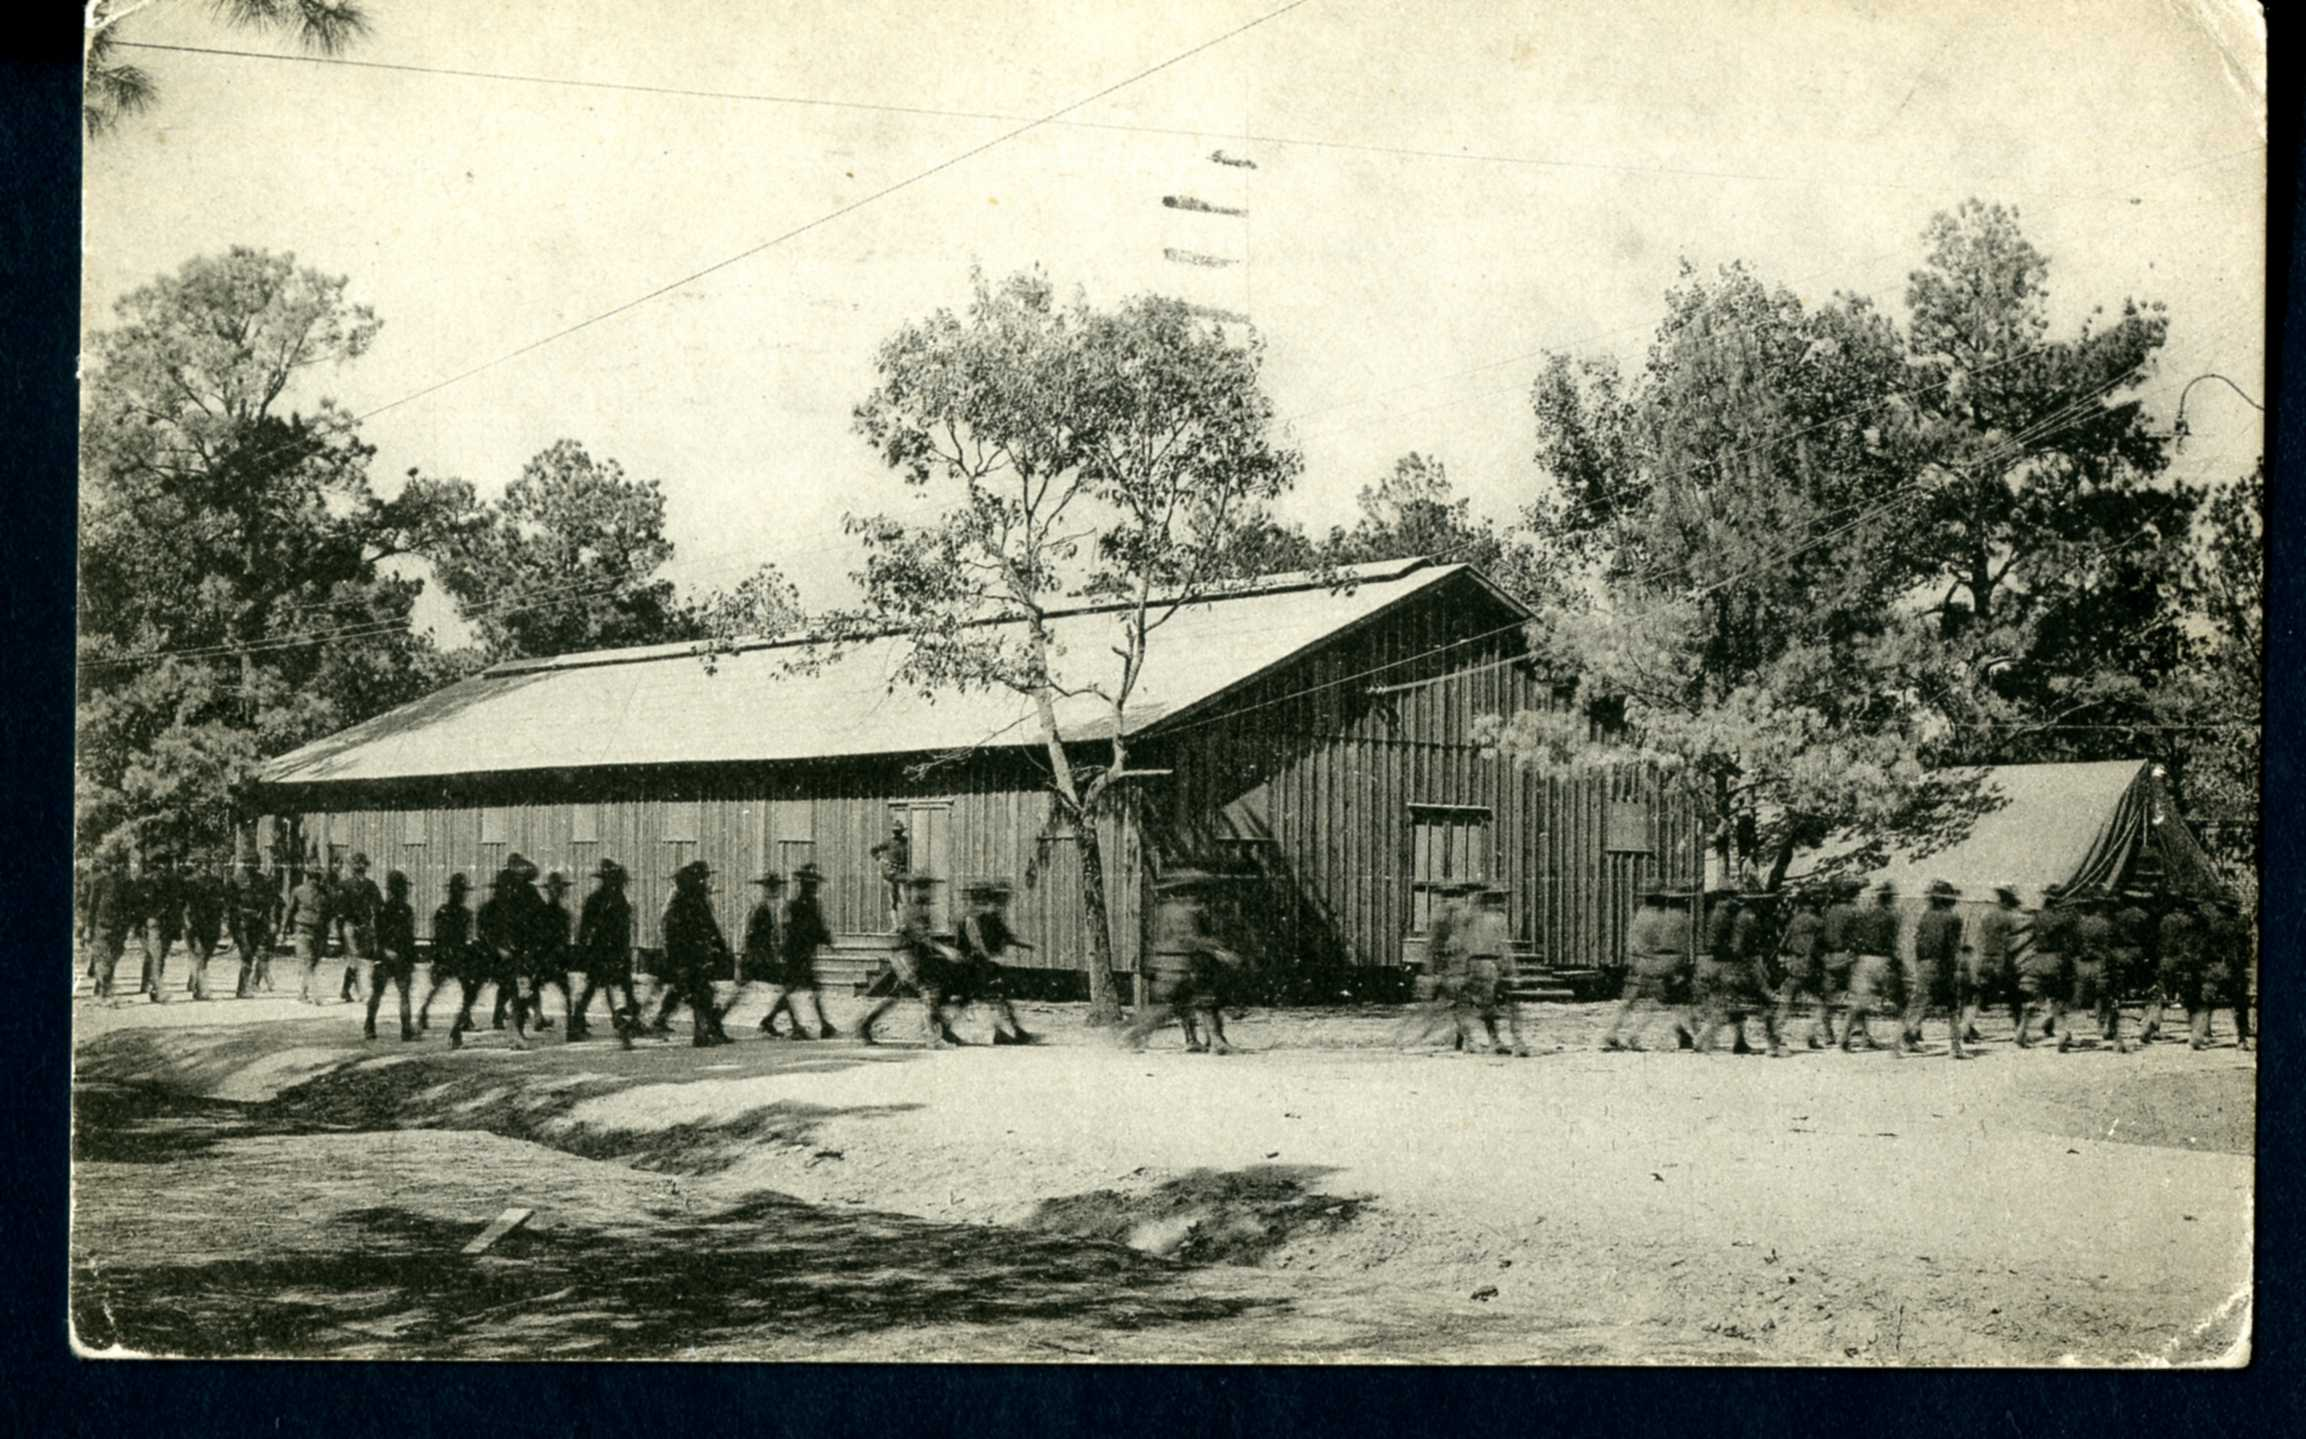 Postcard of Post Office located in Camp Logan, circa 1918